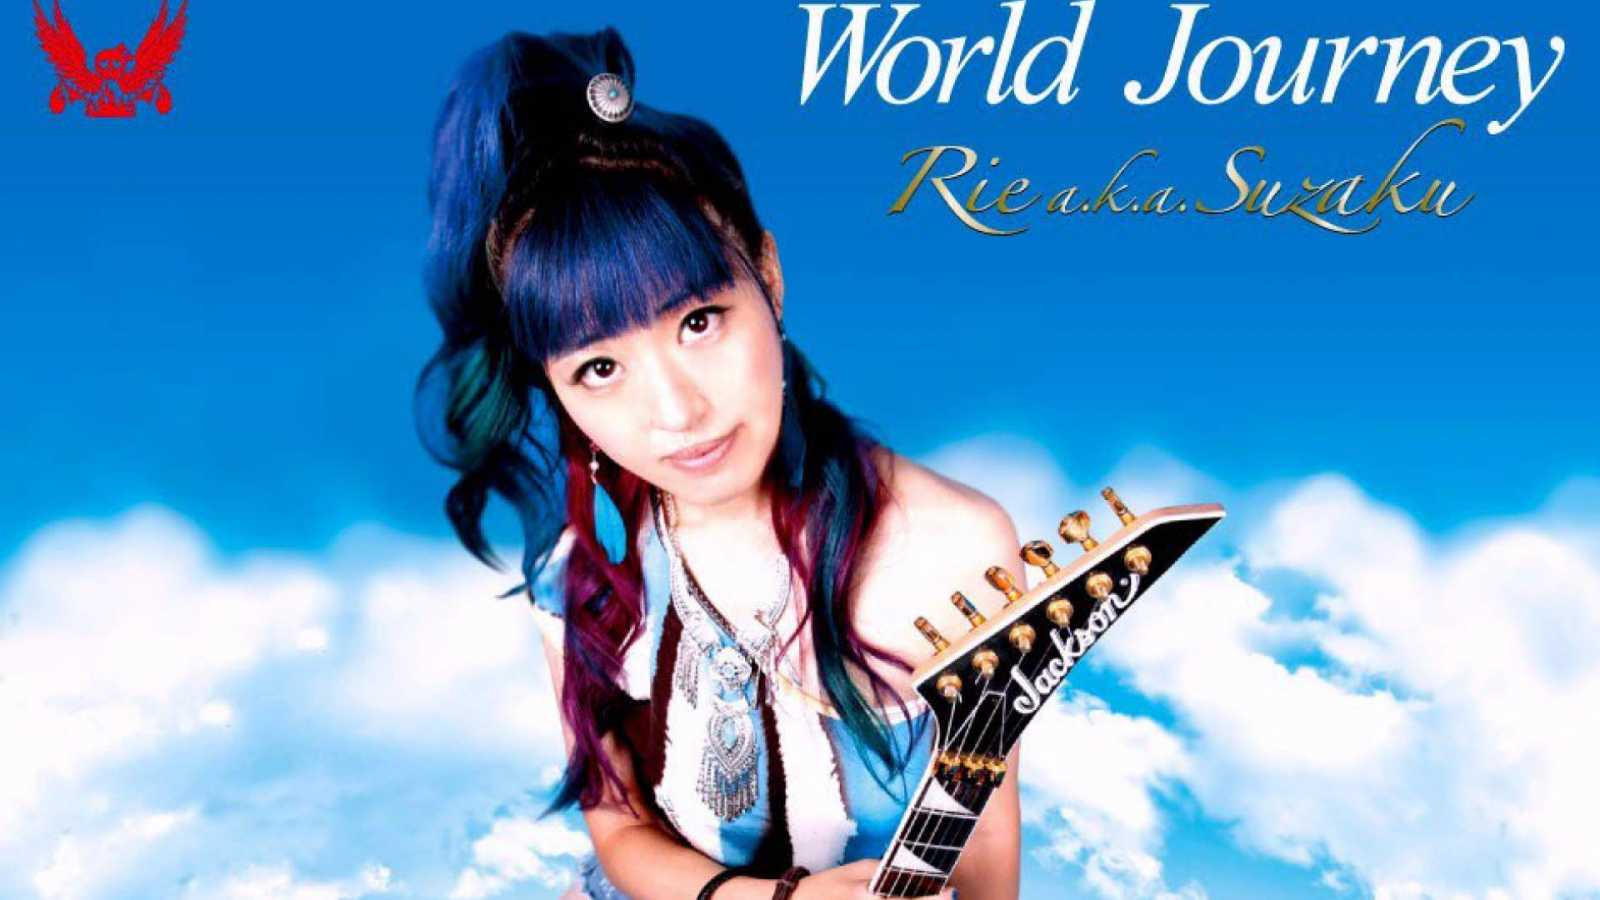 Nouvel album best of de Rie a.k.a. Suzaku © Rie a.k.a. Suzaku. All rights reserved.